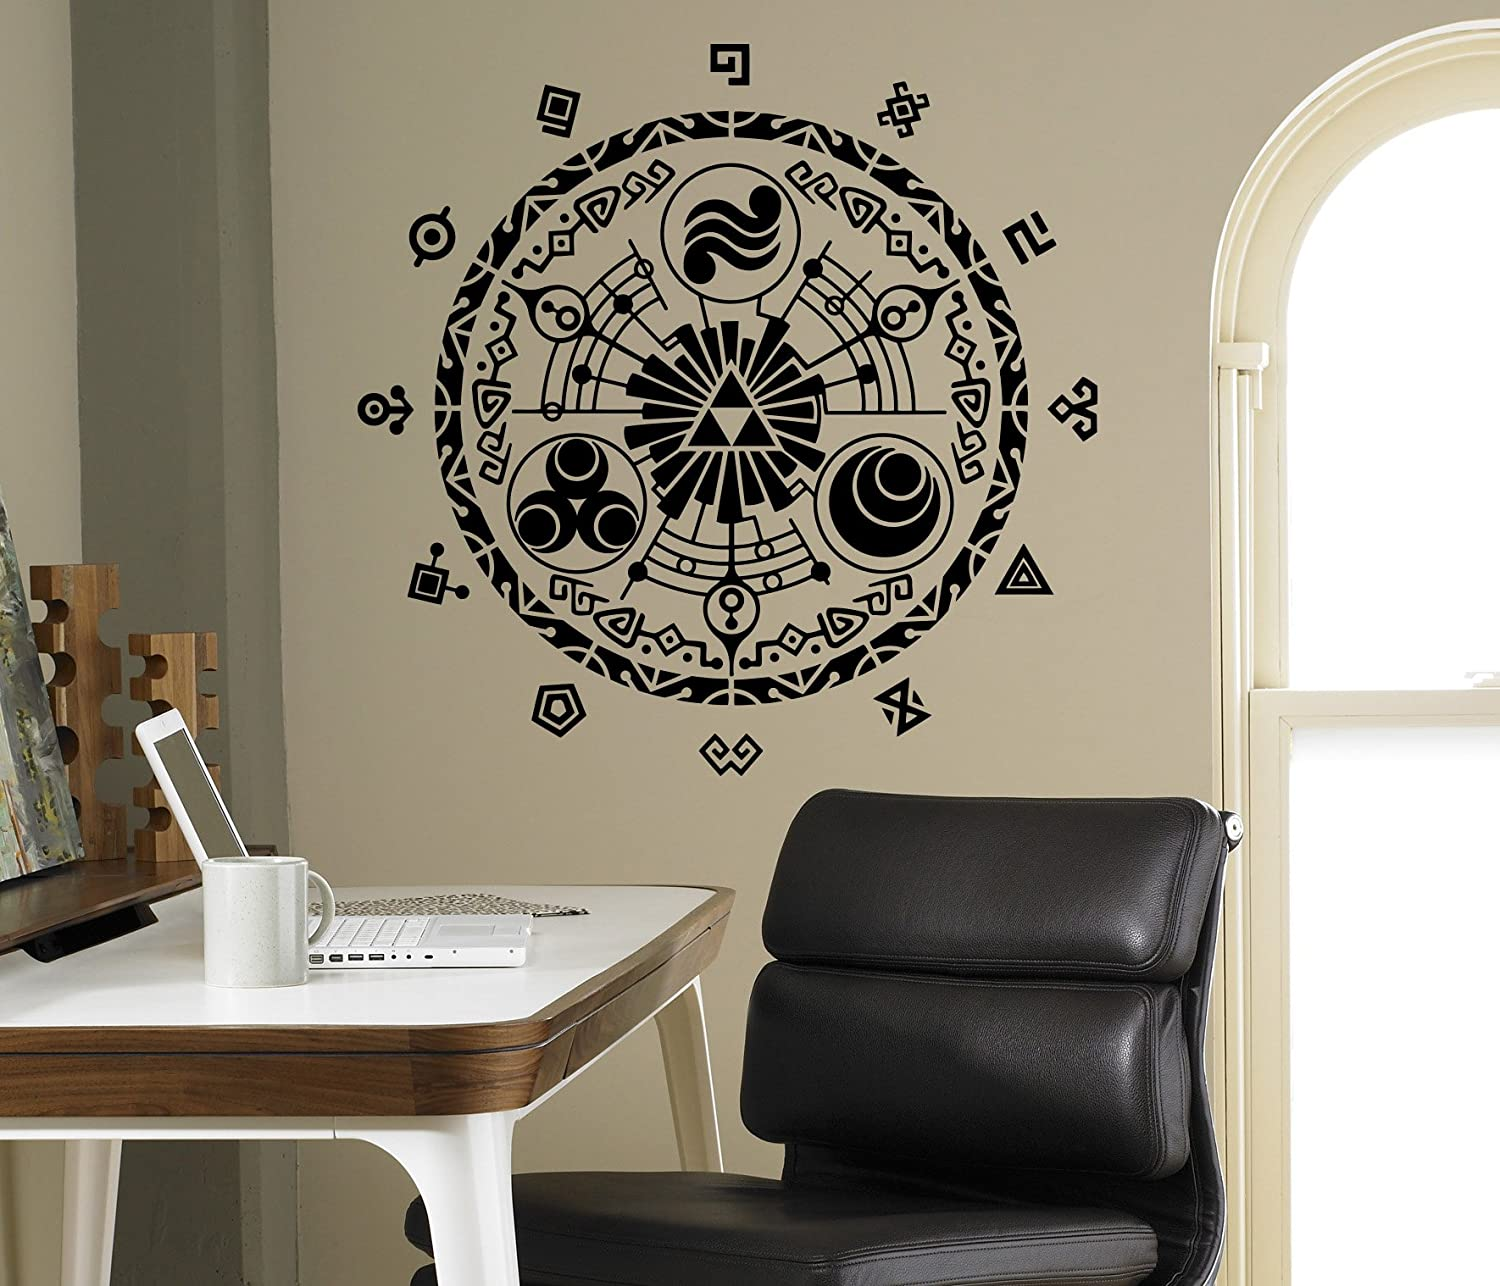 Legend Of Zelda Wall Decal Gate Of Time Vinyl Sticker Princess Zelda